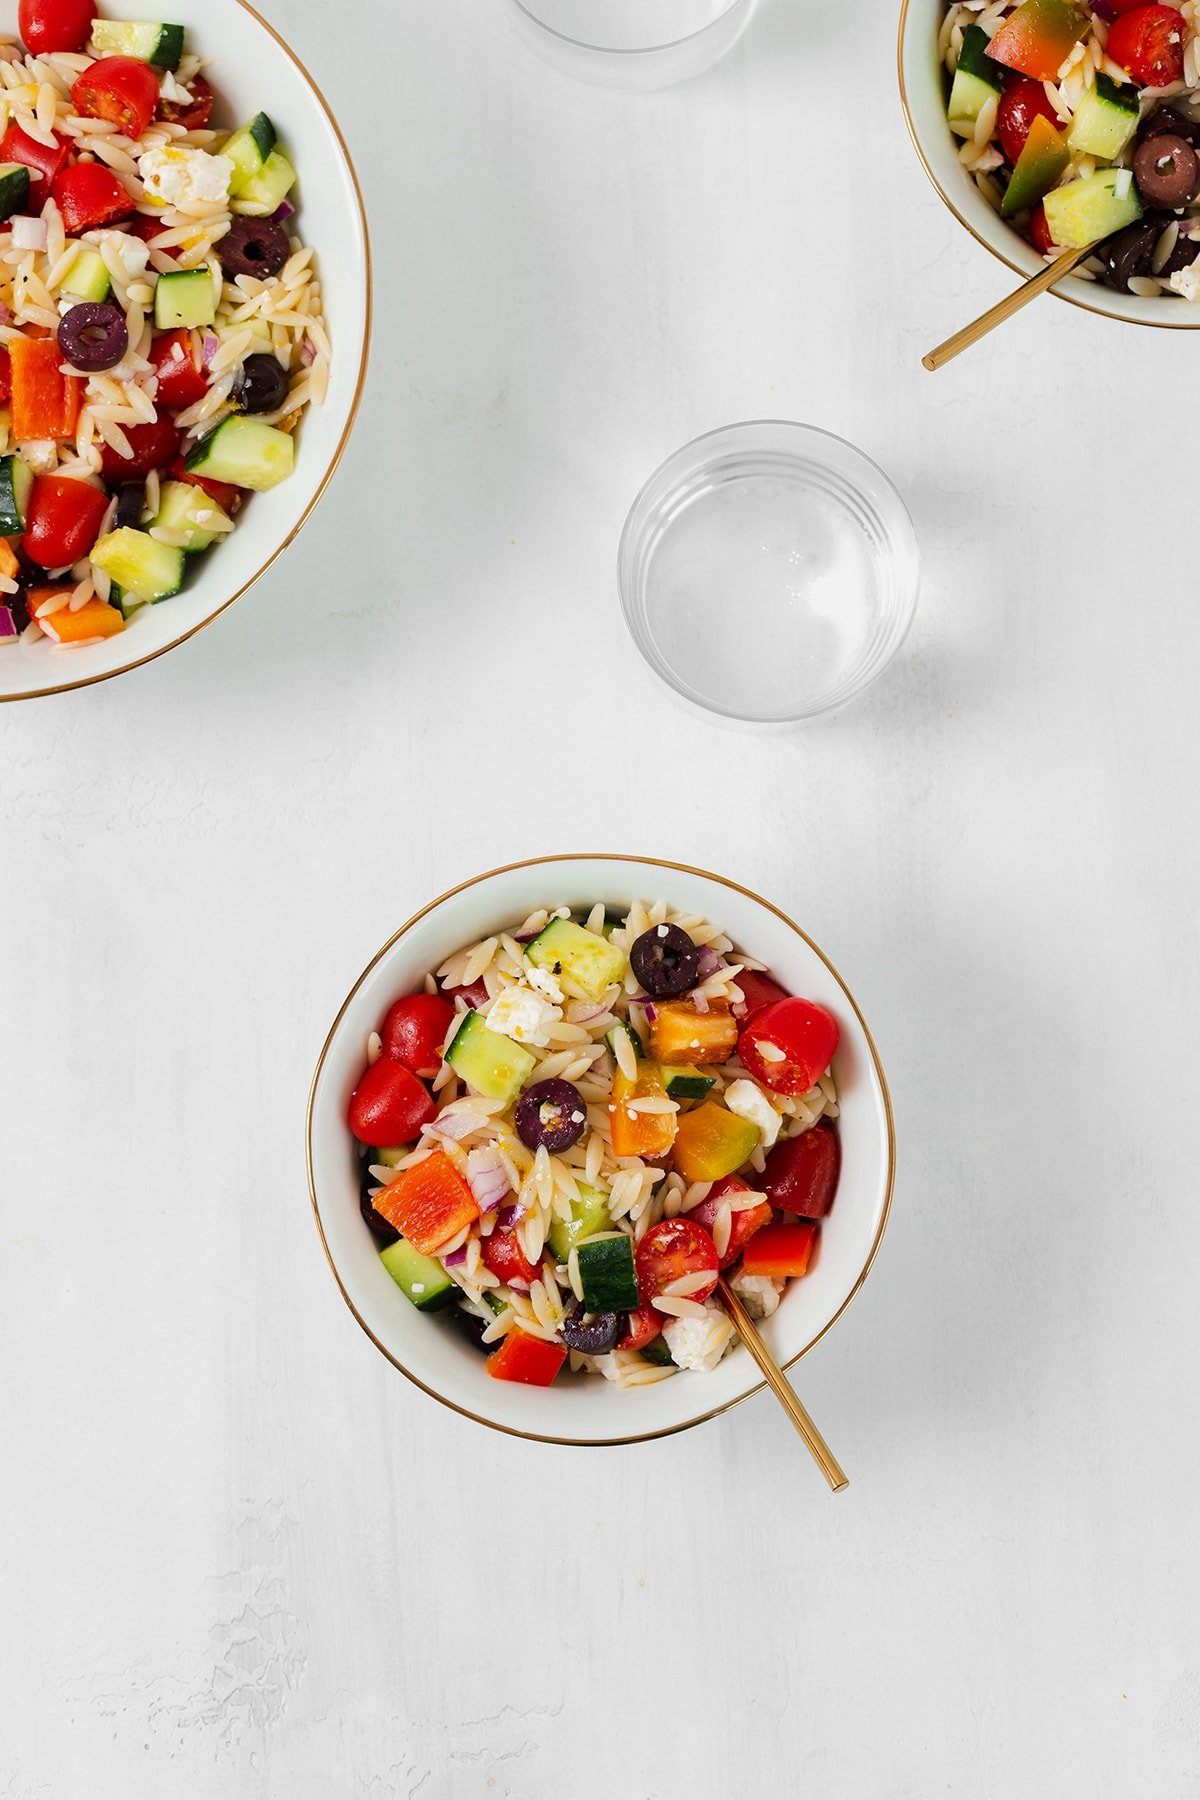 Orzo salad shown in a small white bowl with a gold rim. A small glass of water in the right side above it. Partially shown bigger bowl on the top left corner and a smaller bowl in the top right corner. Both bowls have the pasta salad in them.